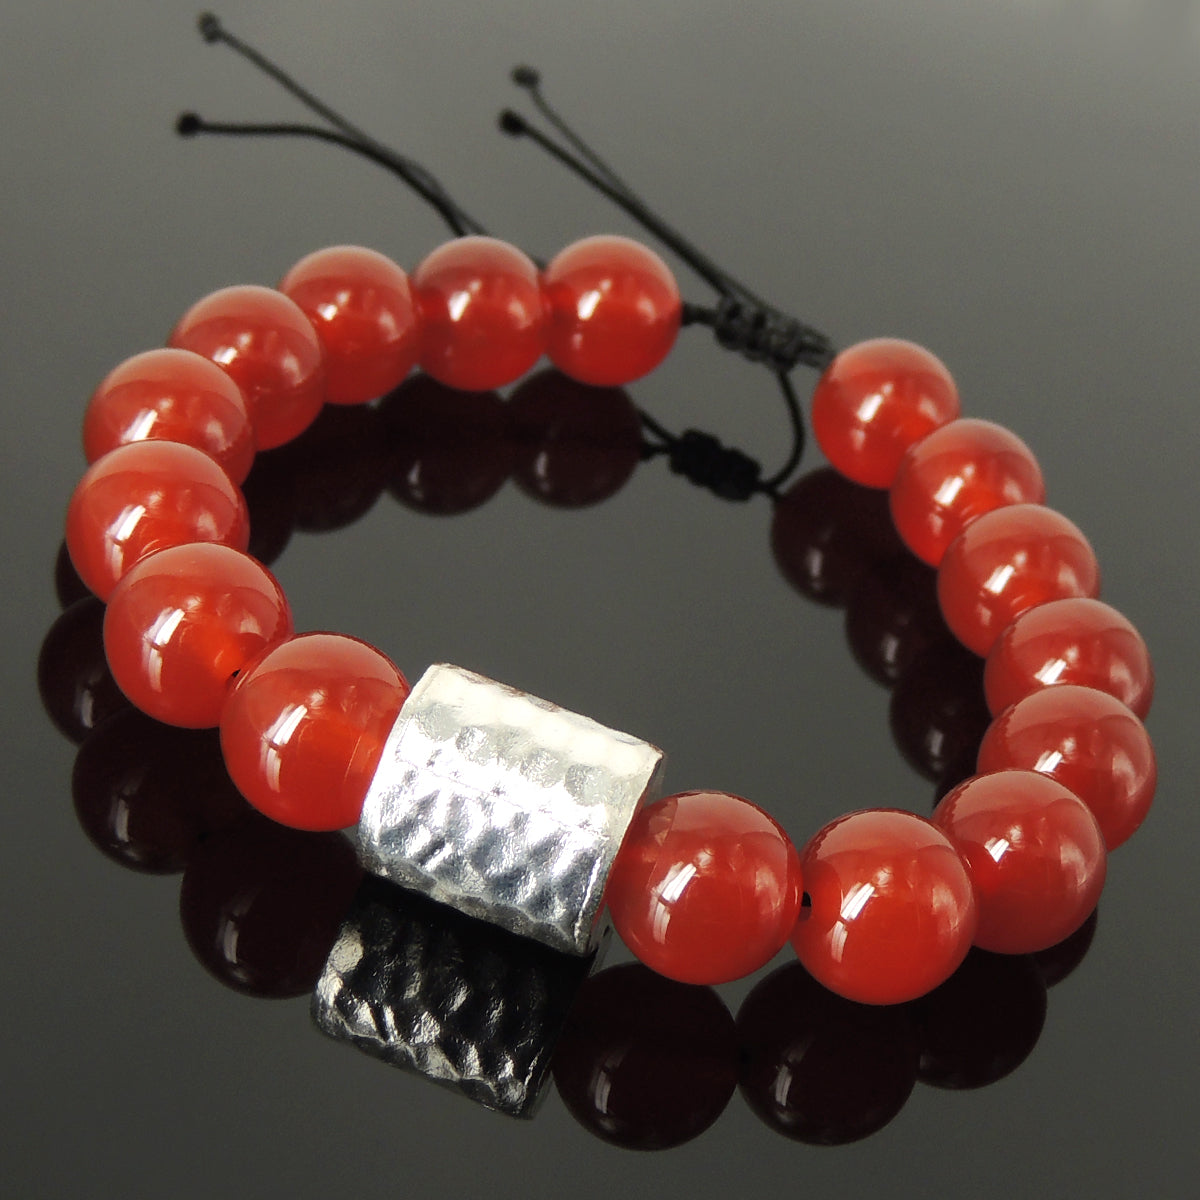 Handmade Braided Soothing Bracelet - 12mm Red Agate Gemstones Healing Harmony Yoga Protection, Adjustable Drawstring, & Genuine S925 Sterling Silver Faceted Barrel Bead BR1541